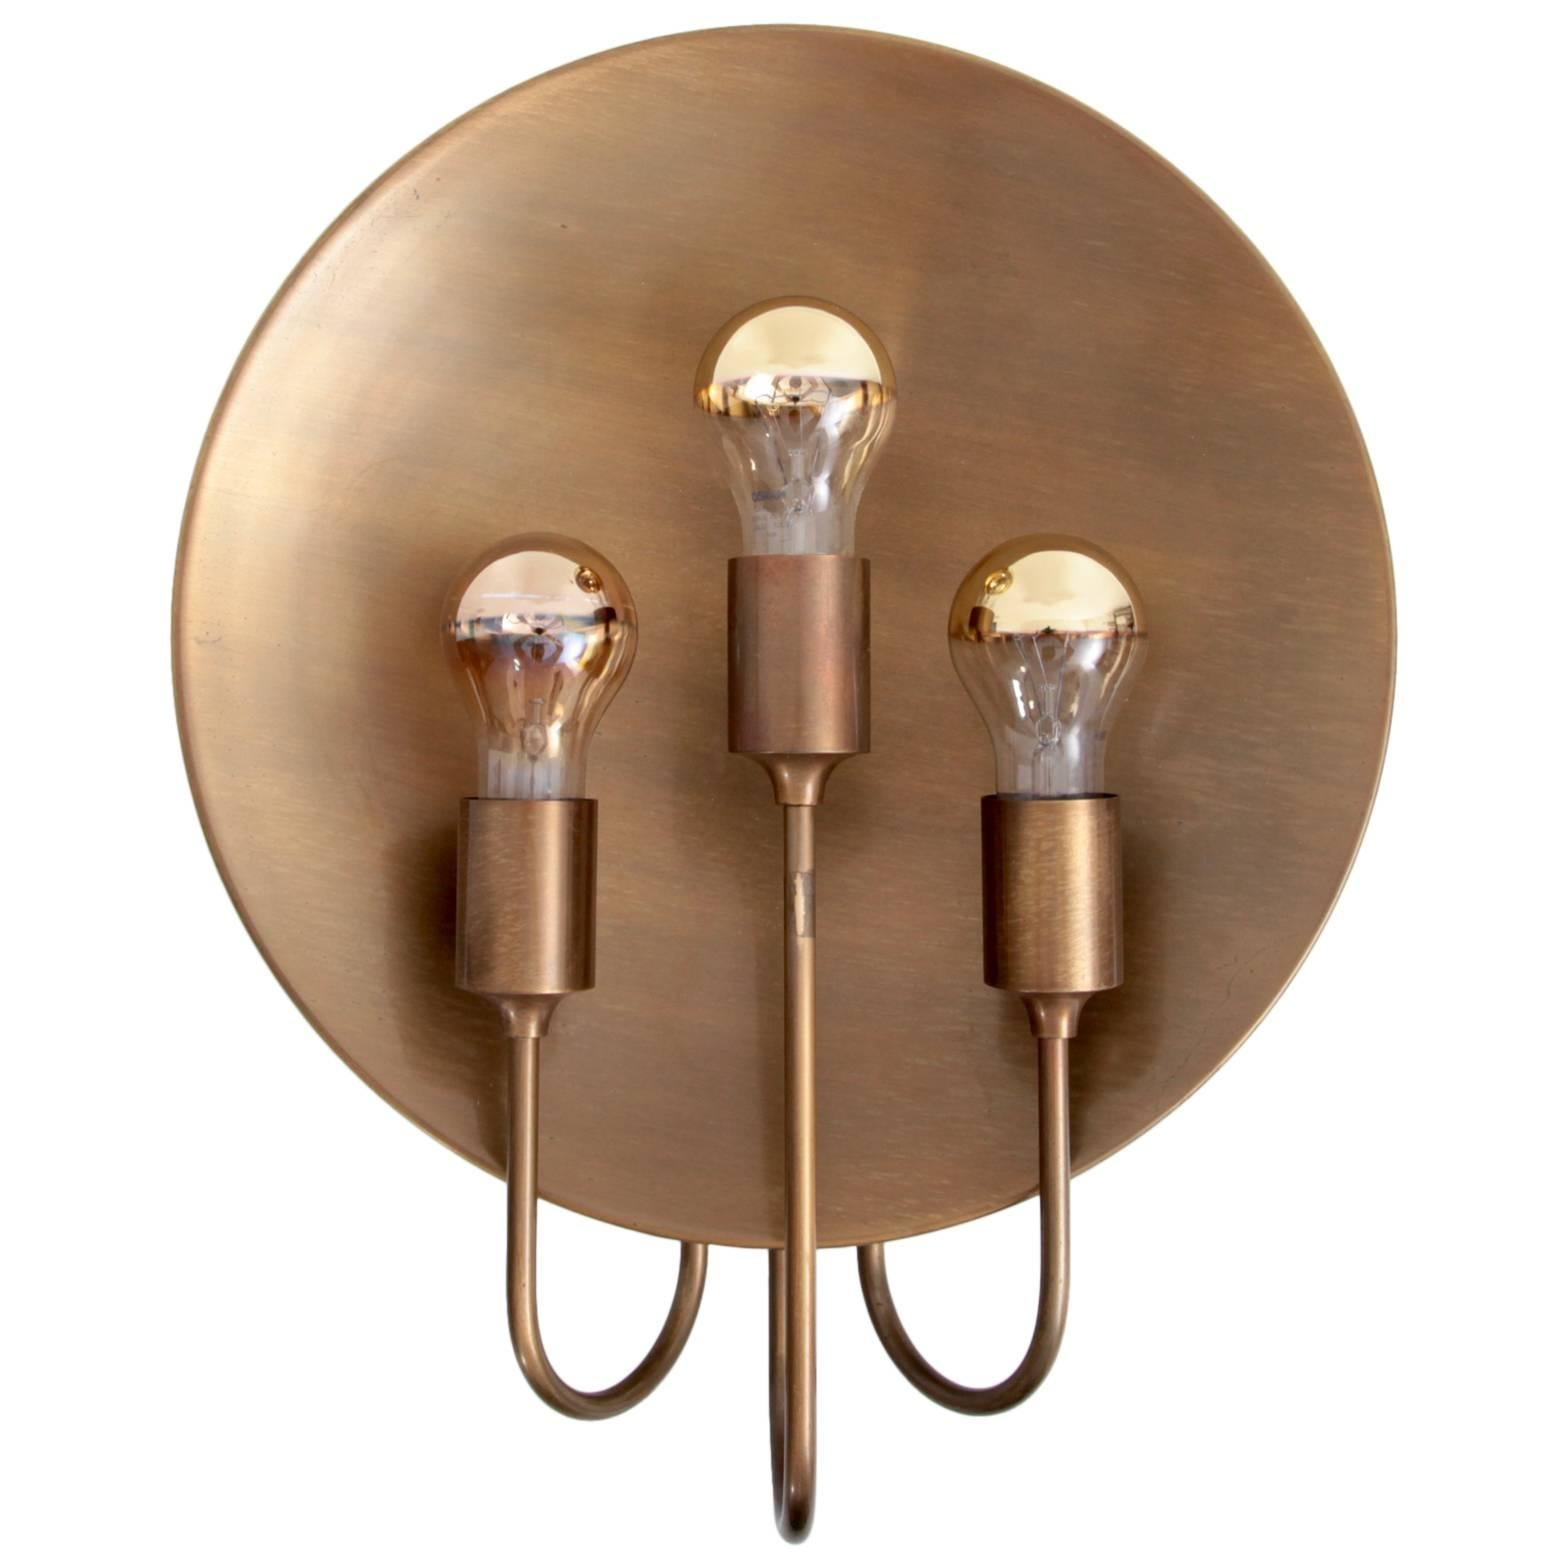 Rare Huge Florian Schulz W185 Brass Wall Lamp, 1960s, Germany